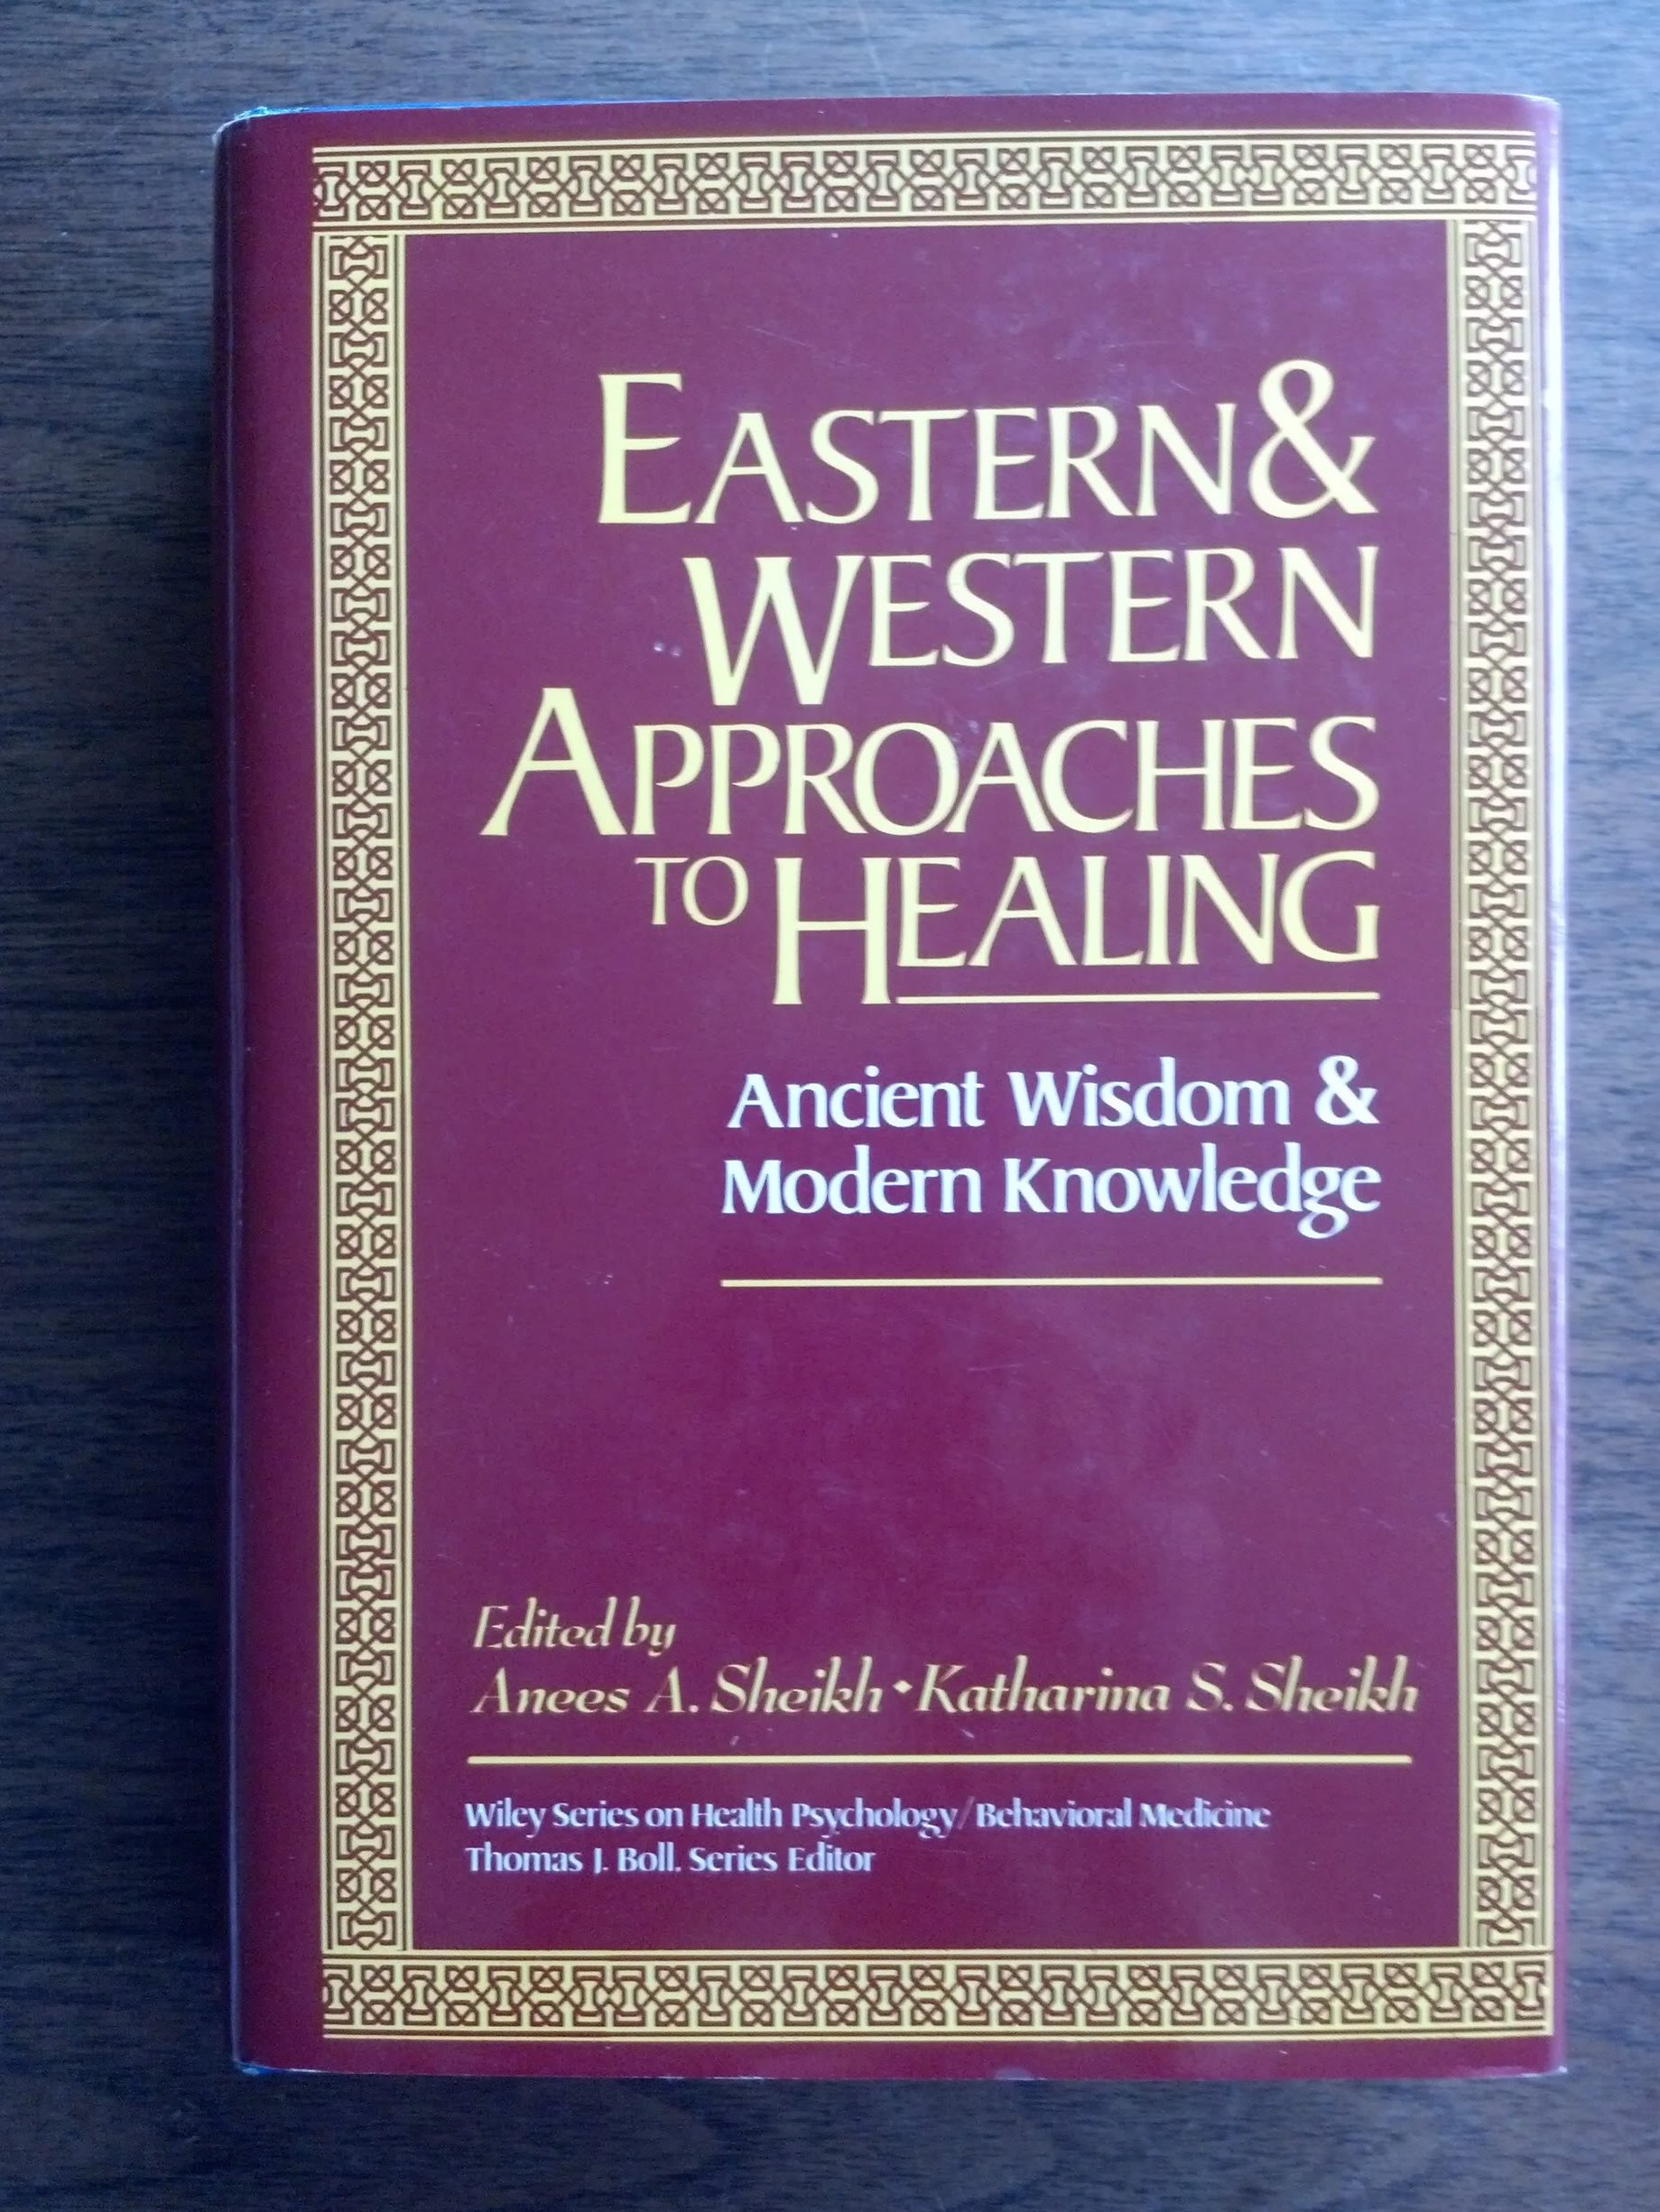 Eastern and Western Approaches to Healing: Ancient Wisdom and Modern Knowledge